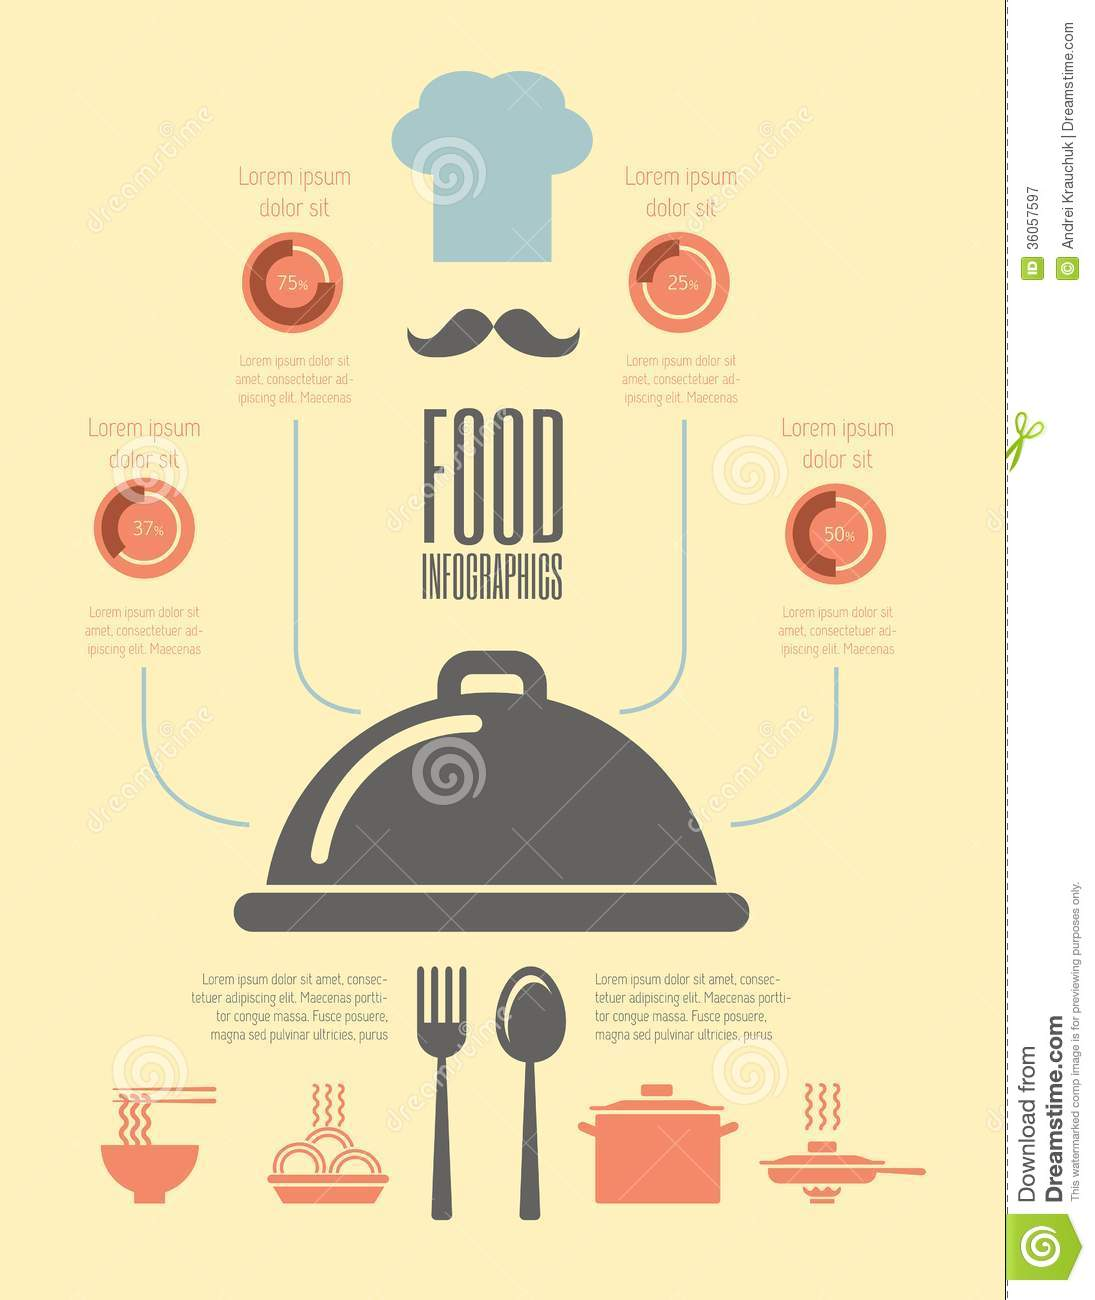 Food Infographic Template. Royalty Free Stock Photography - Image ...